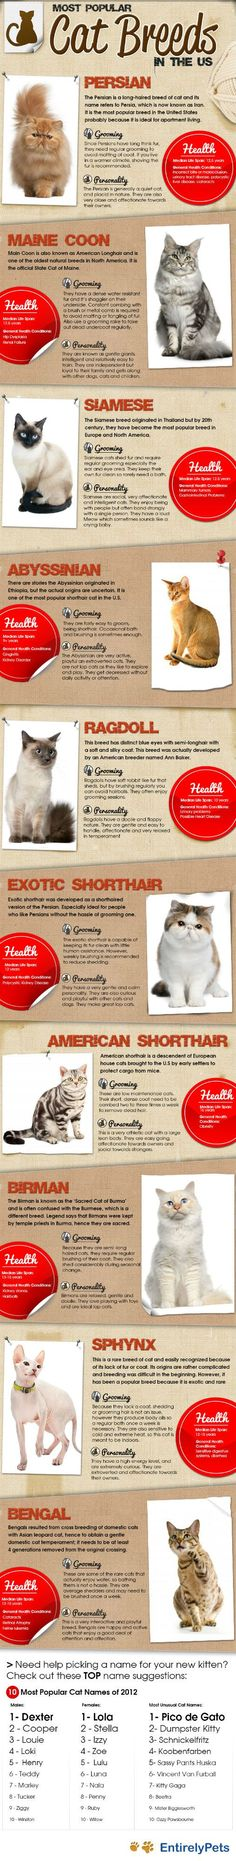 Curious which #cat breeds are the most popular in America? You voted and here are the results: